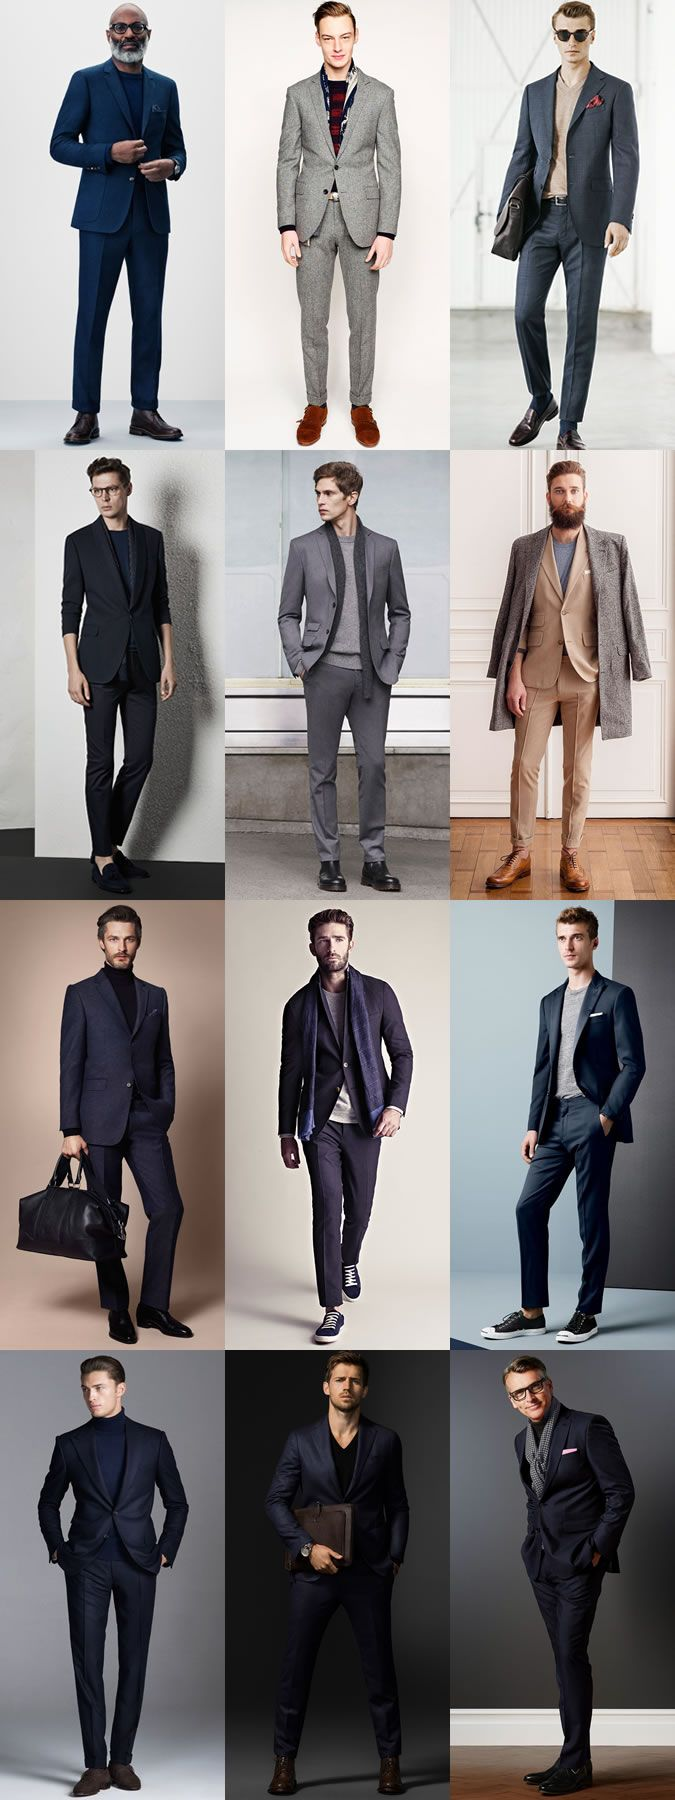 Men's 2015 Fashion Trend: Dressed-Down Suiting